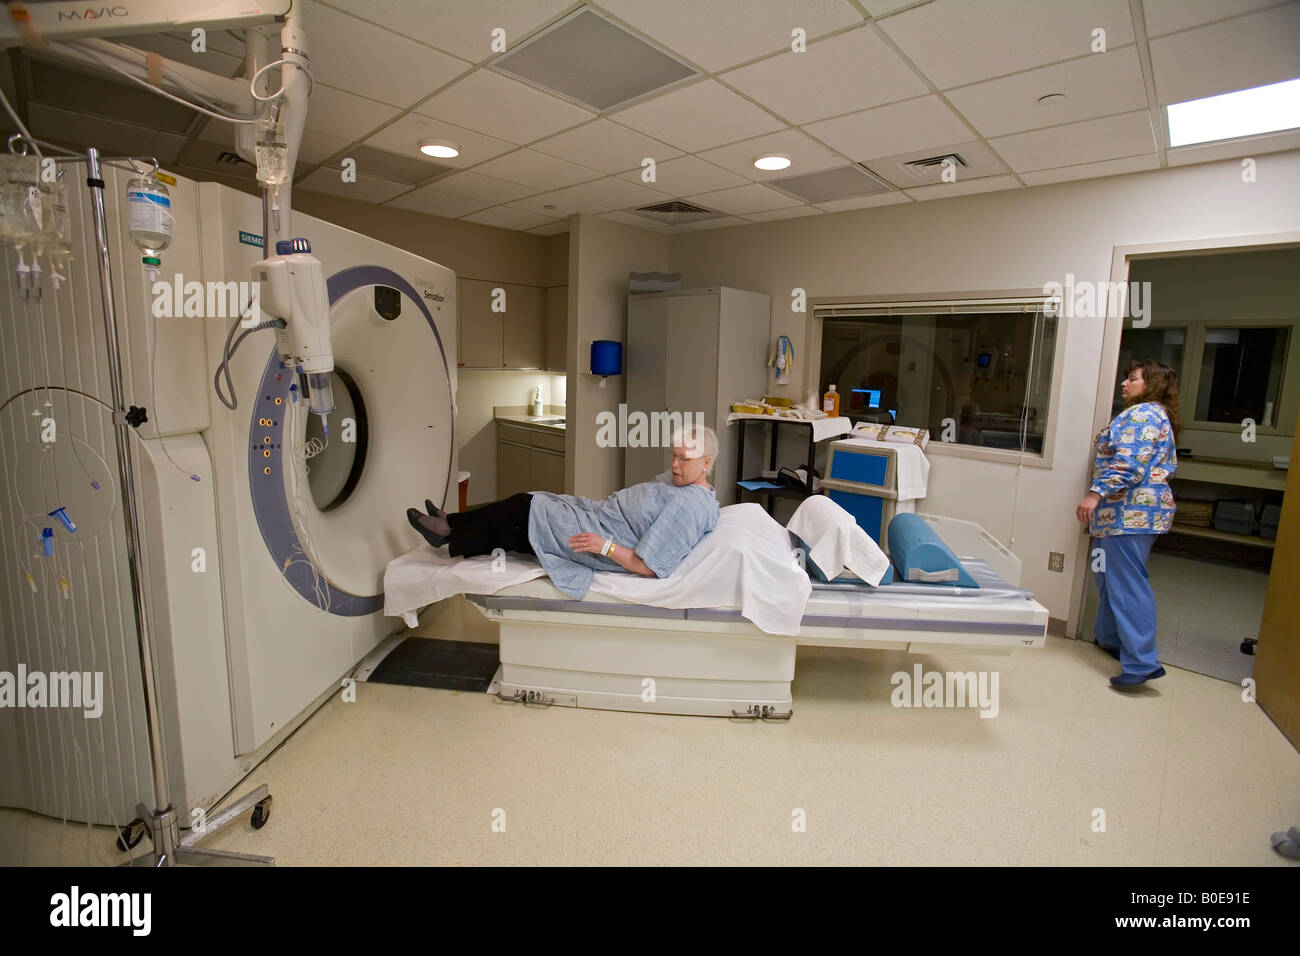 Patient gets CT scan during clinical trial of new cancer treatment - Stock Image